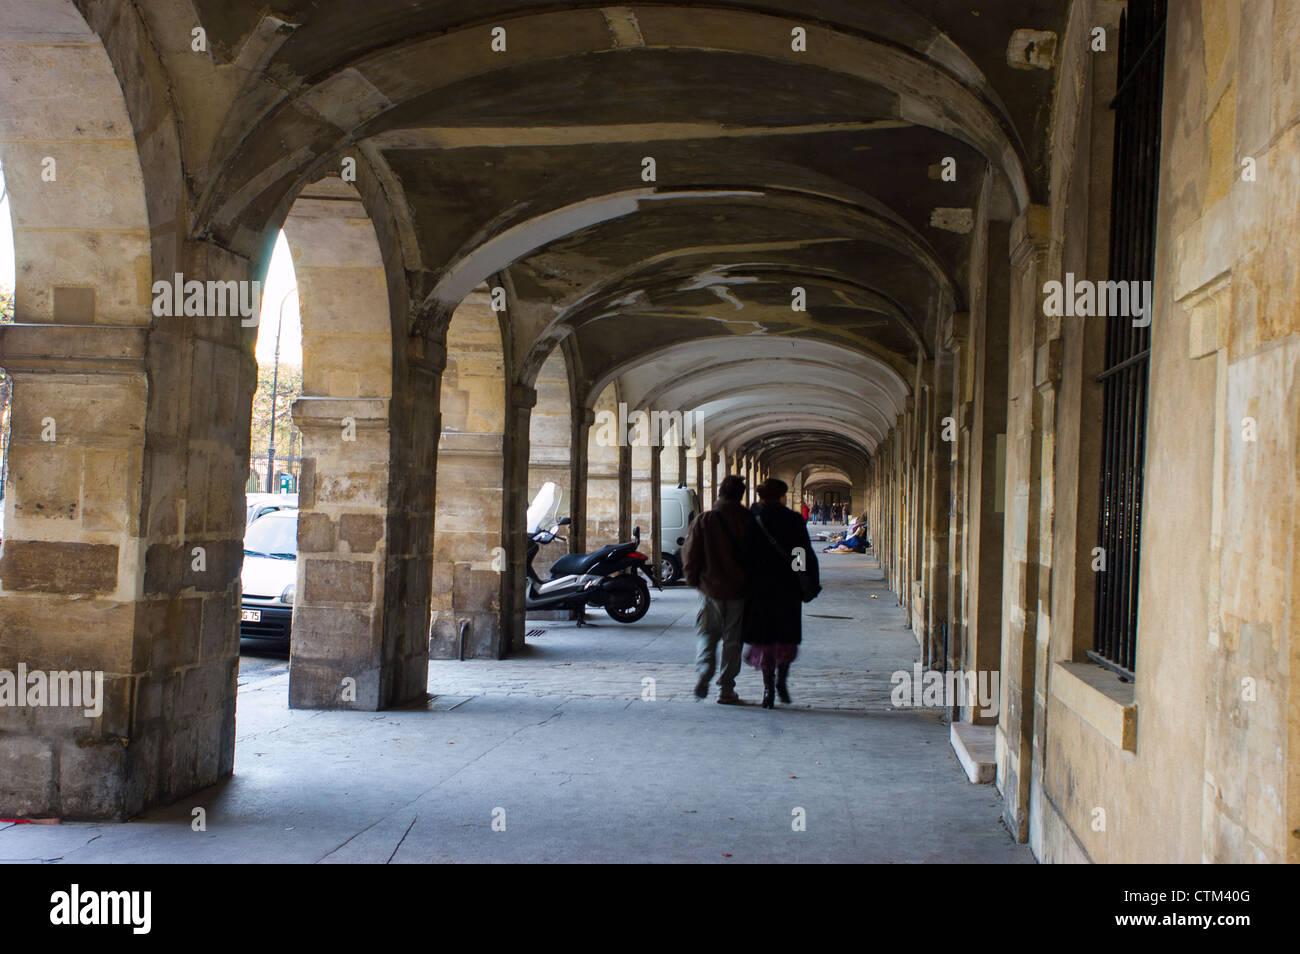 Paris, France,  Autumn, People Promenading, in Arches of place des Vosges, in the Marais District - Stock Image